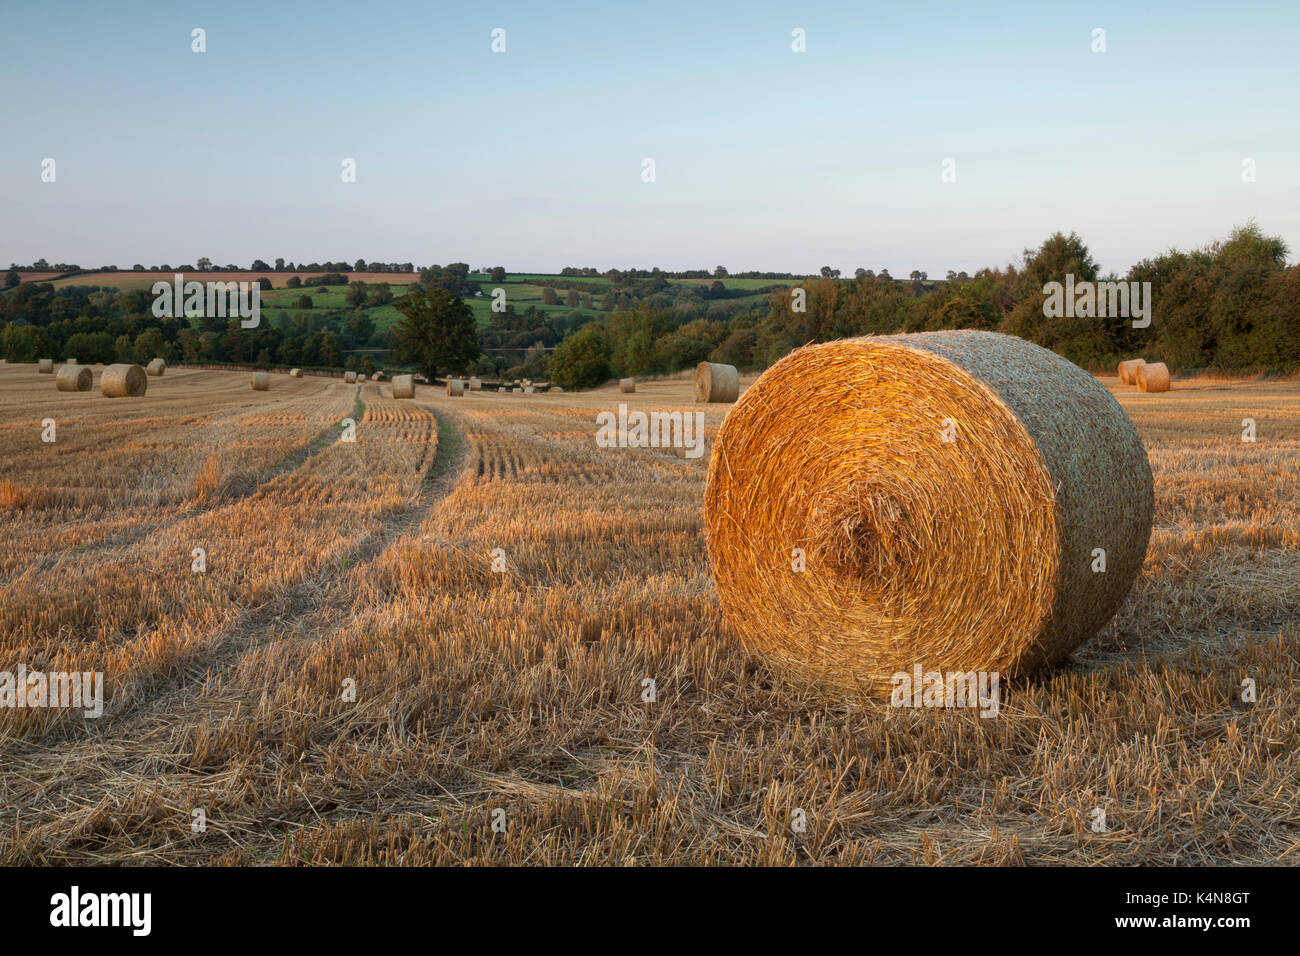 A field of round wheat straw bales bathed in warm evening sunlight near sunset, Ravensthorpe in Northamptonshire, England. - Stock Image